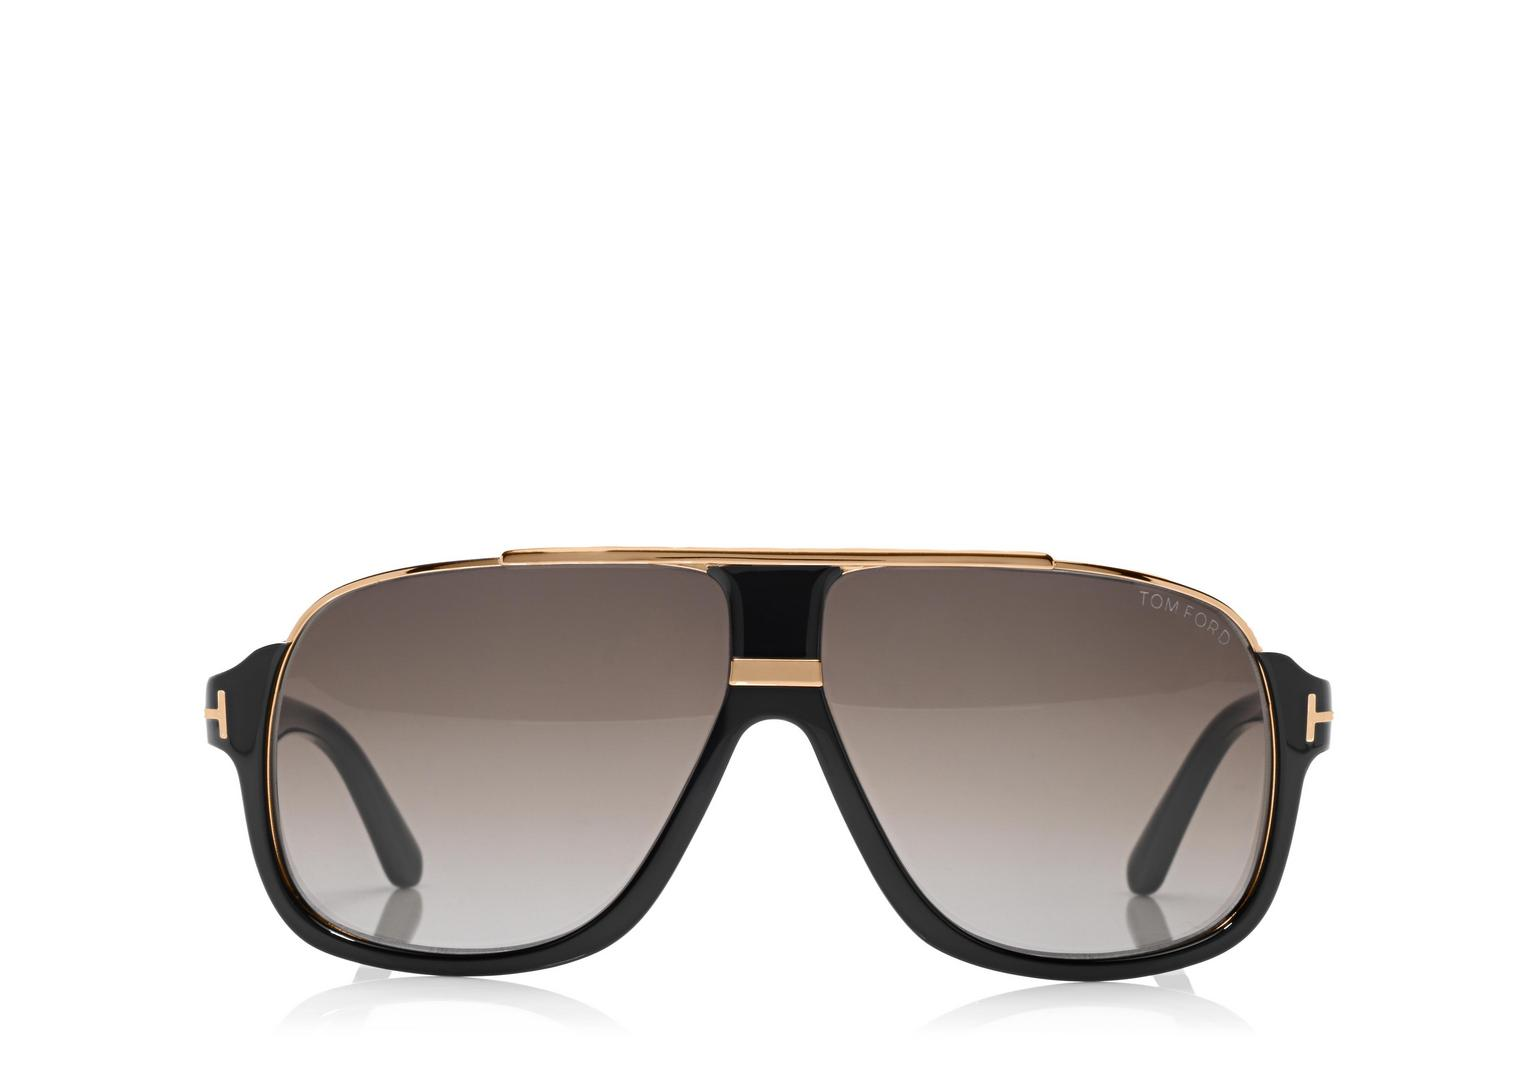 tom ford elliot square sunglasses sunglasses. Cars Review. Best American Auto & Cars Review